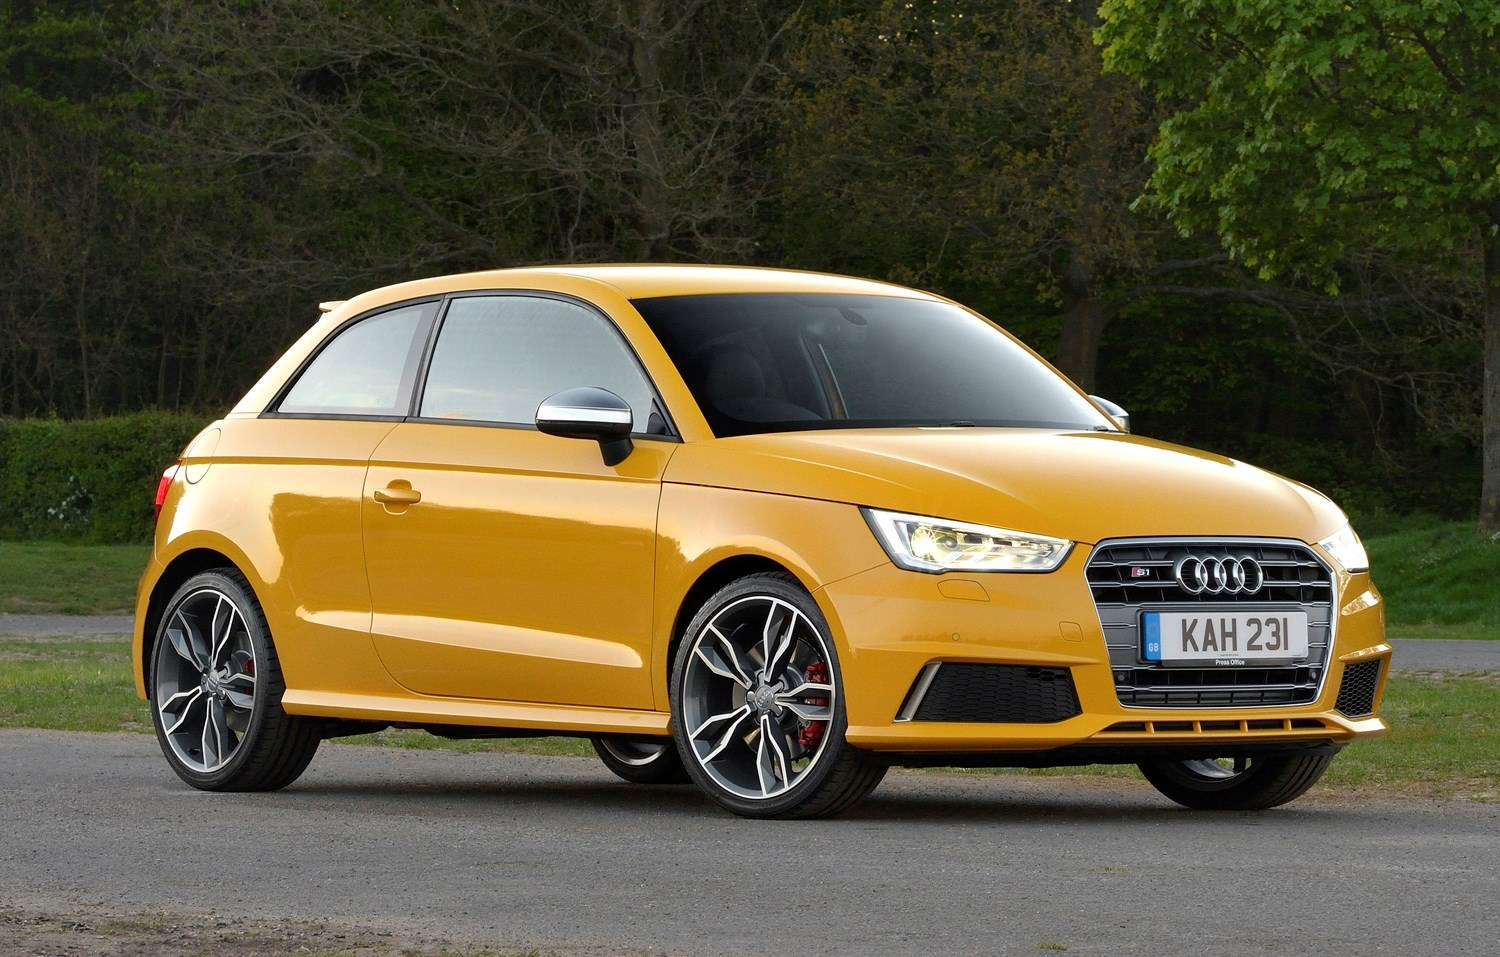 Audi S1 - the best small hatchbacks